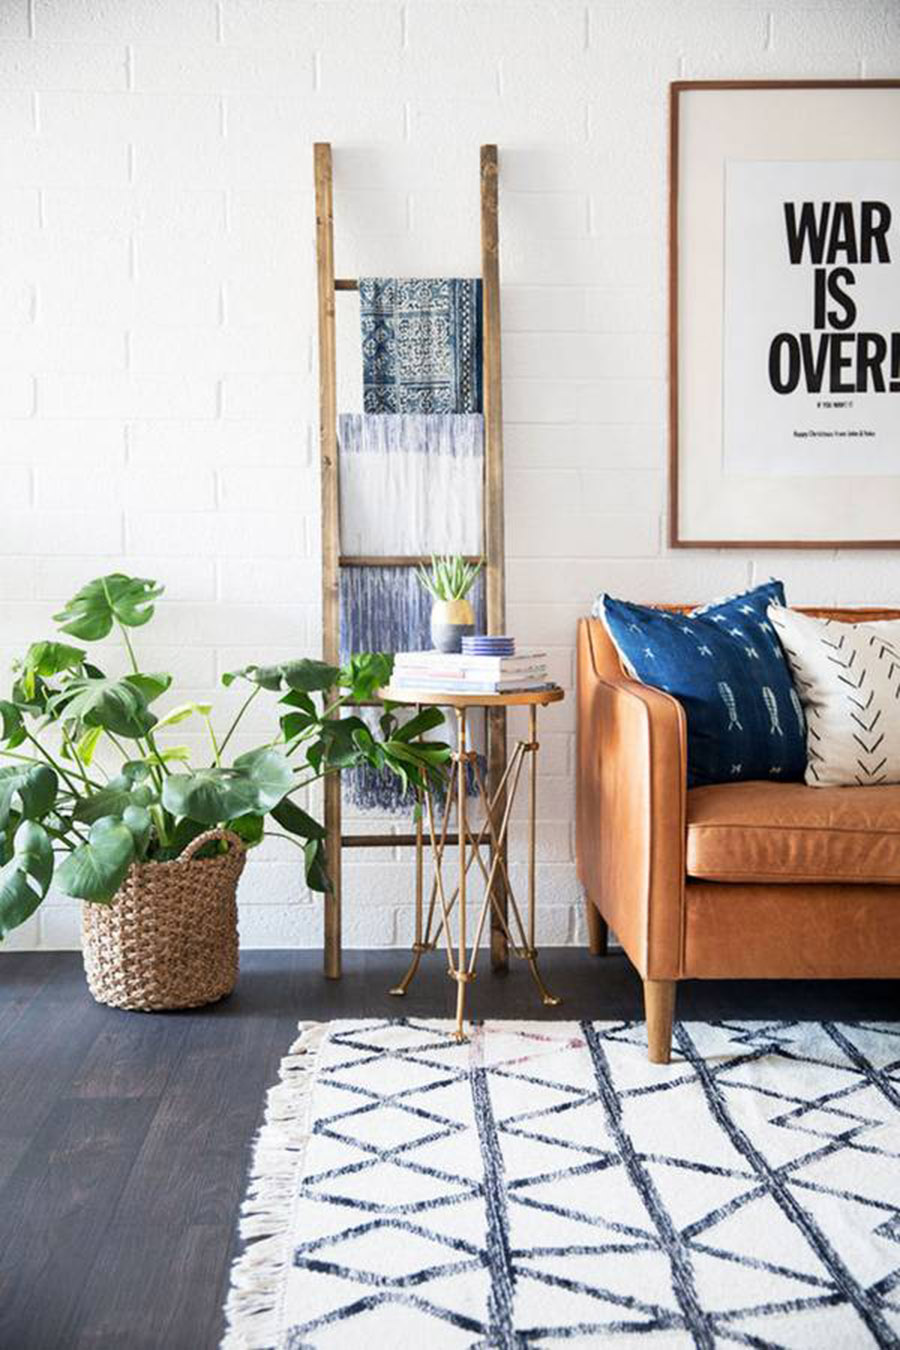 Home inspiration southwest boho minimalism a side of for Home decor inspiration